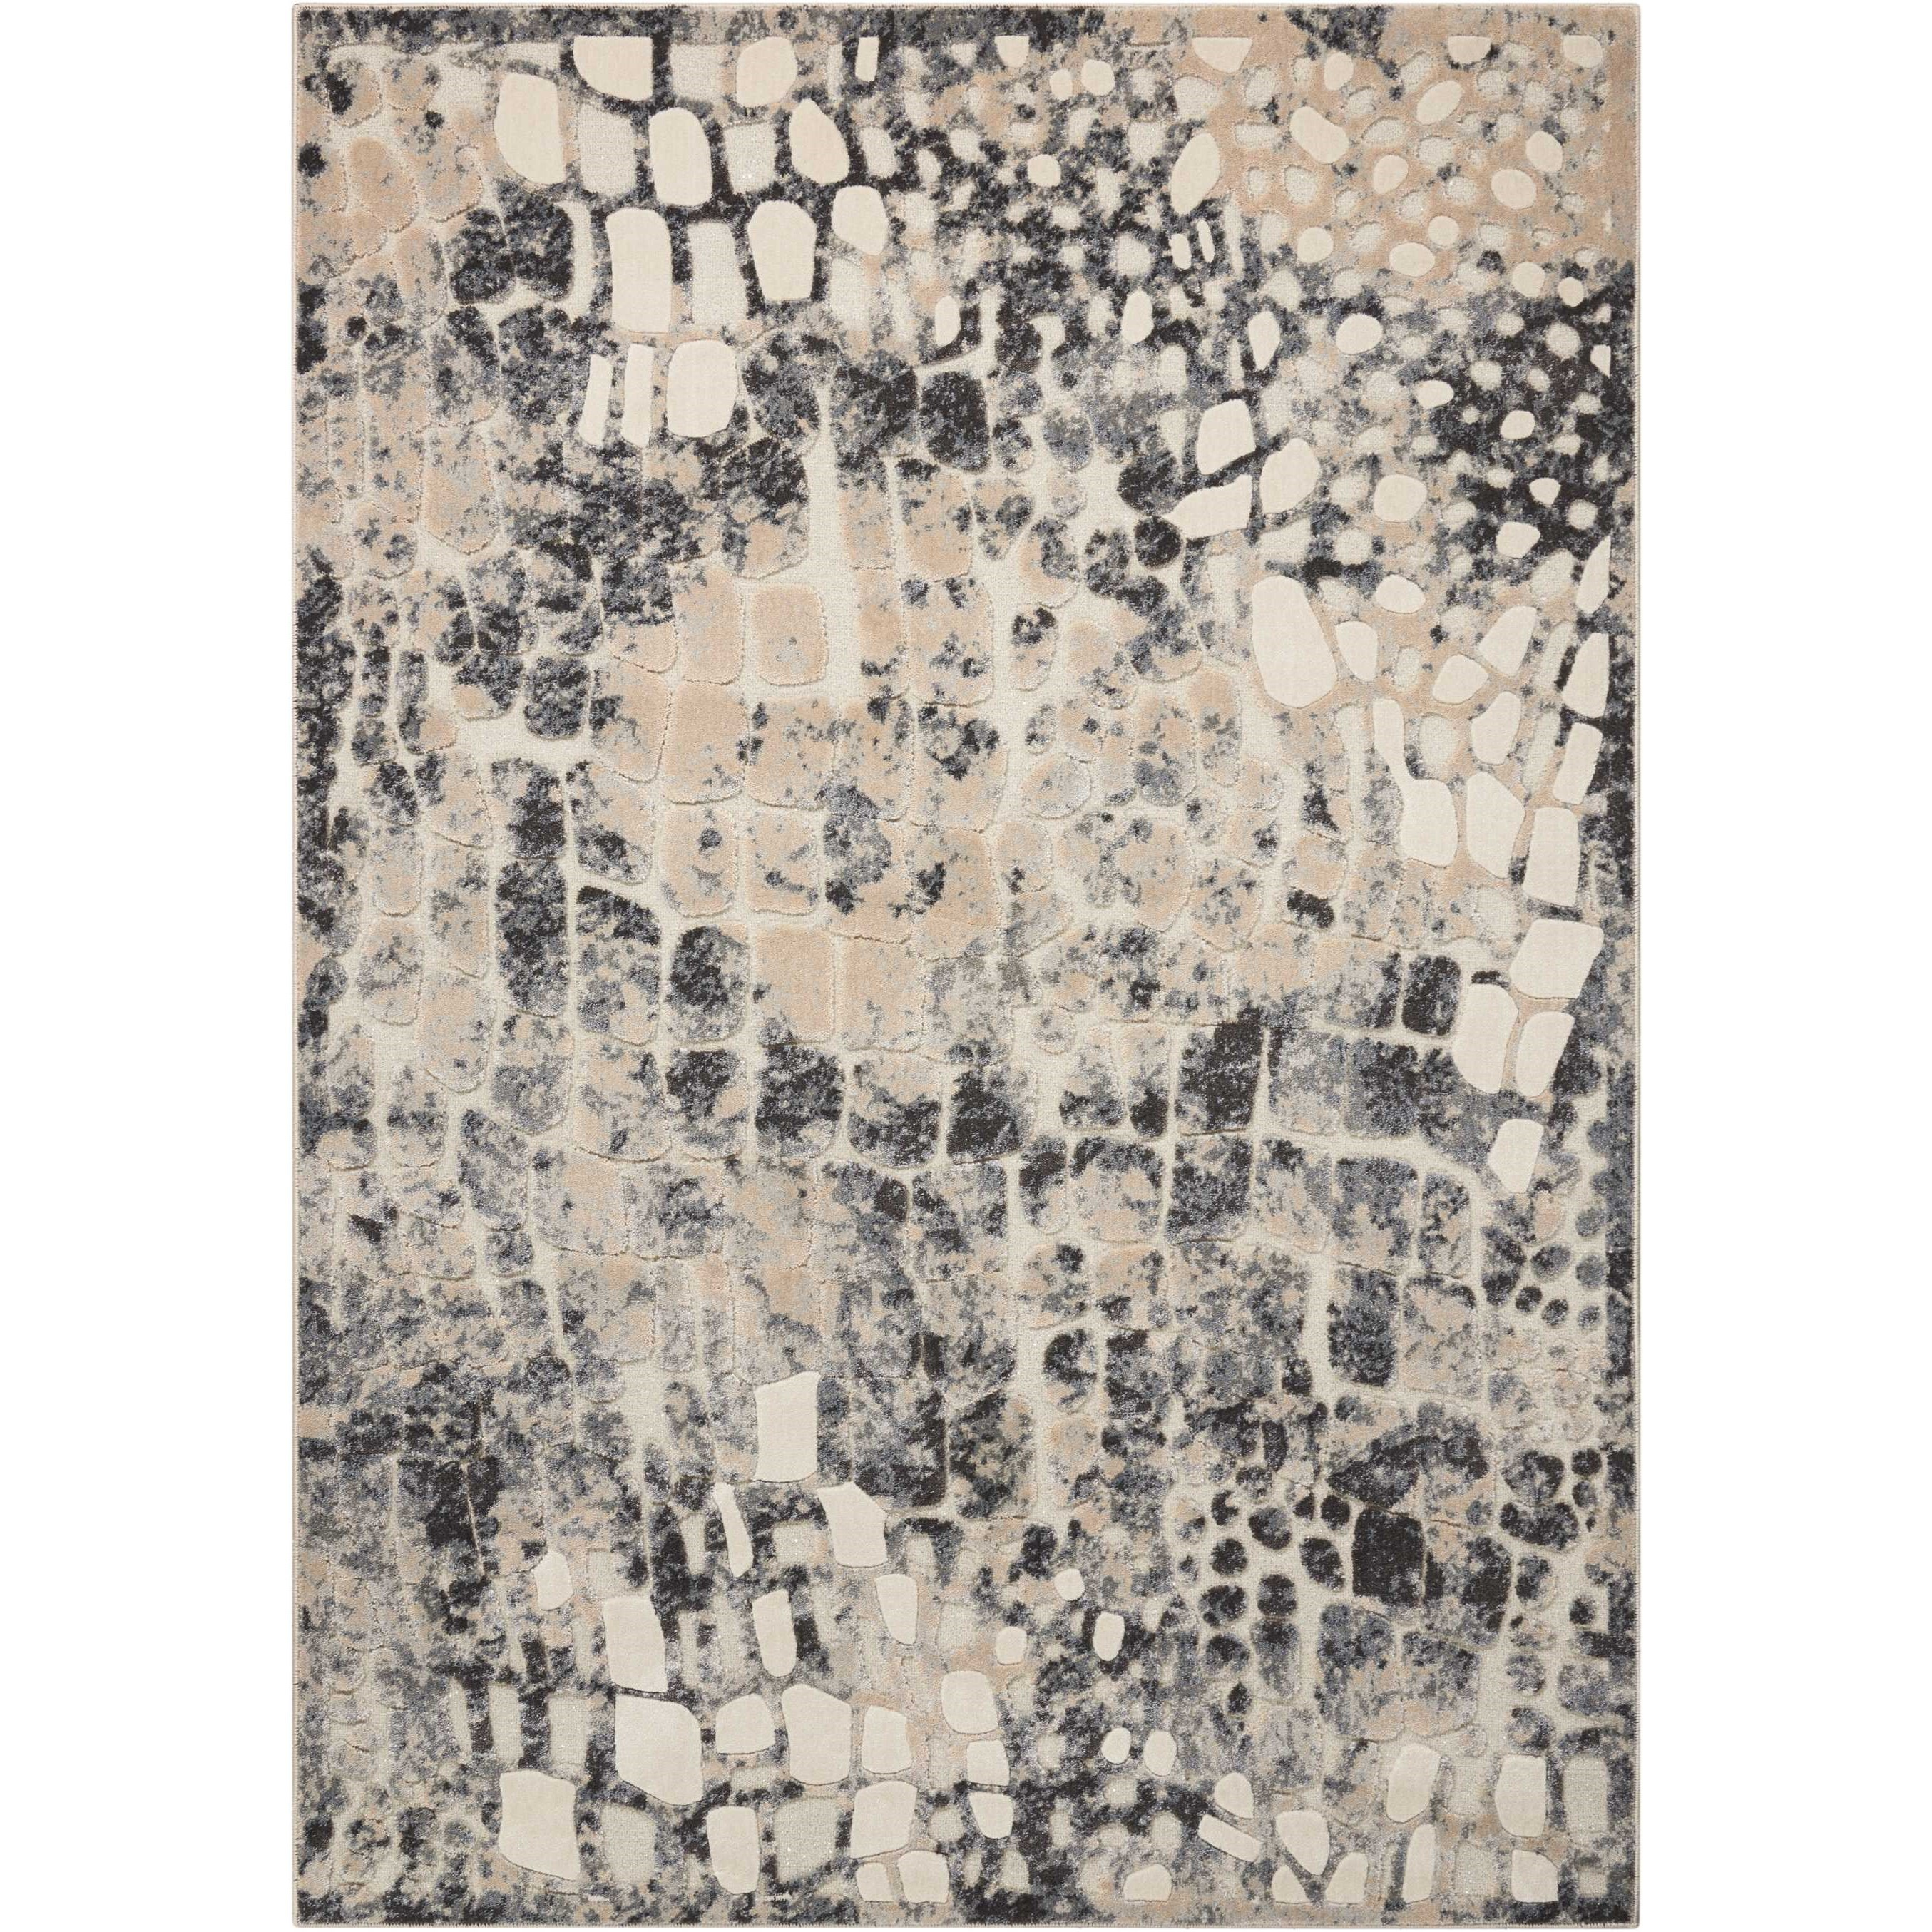 """Gleam 3'10"""" x 5'10"""" Rug by Michael Amini by Nourison at Home Collections Furniture"""